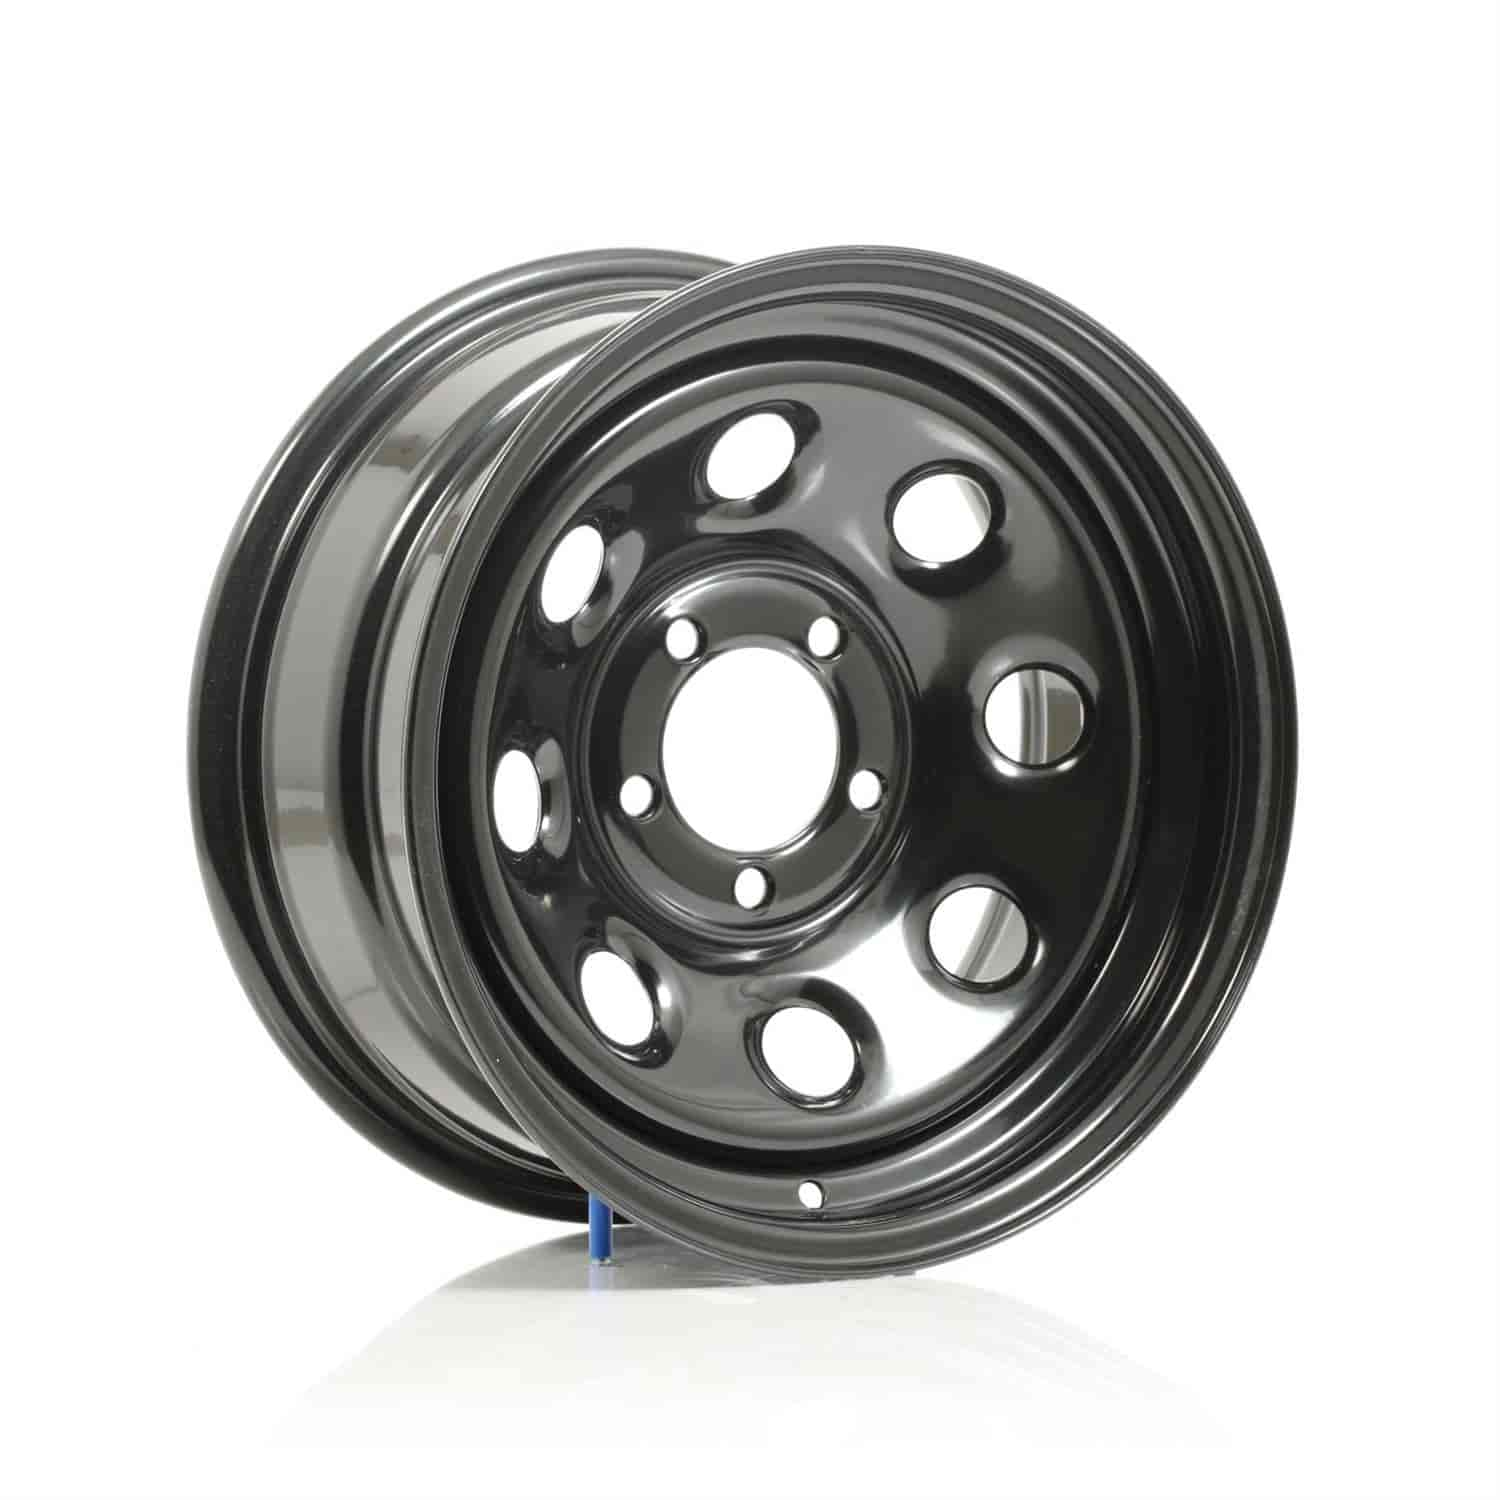 Cragar 3977780 - Cragar Black Soft 8 Wheels